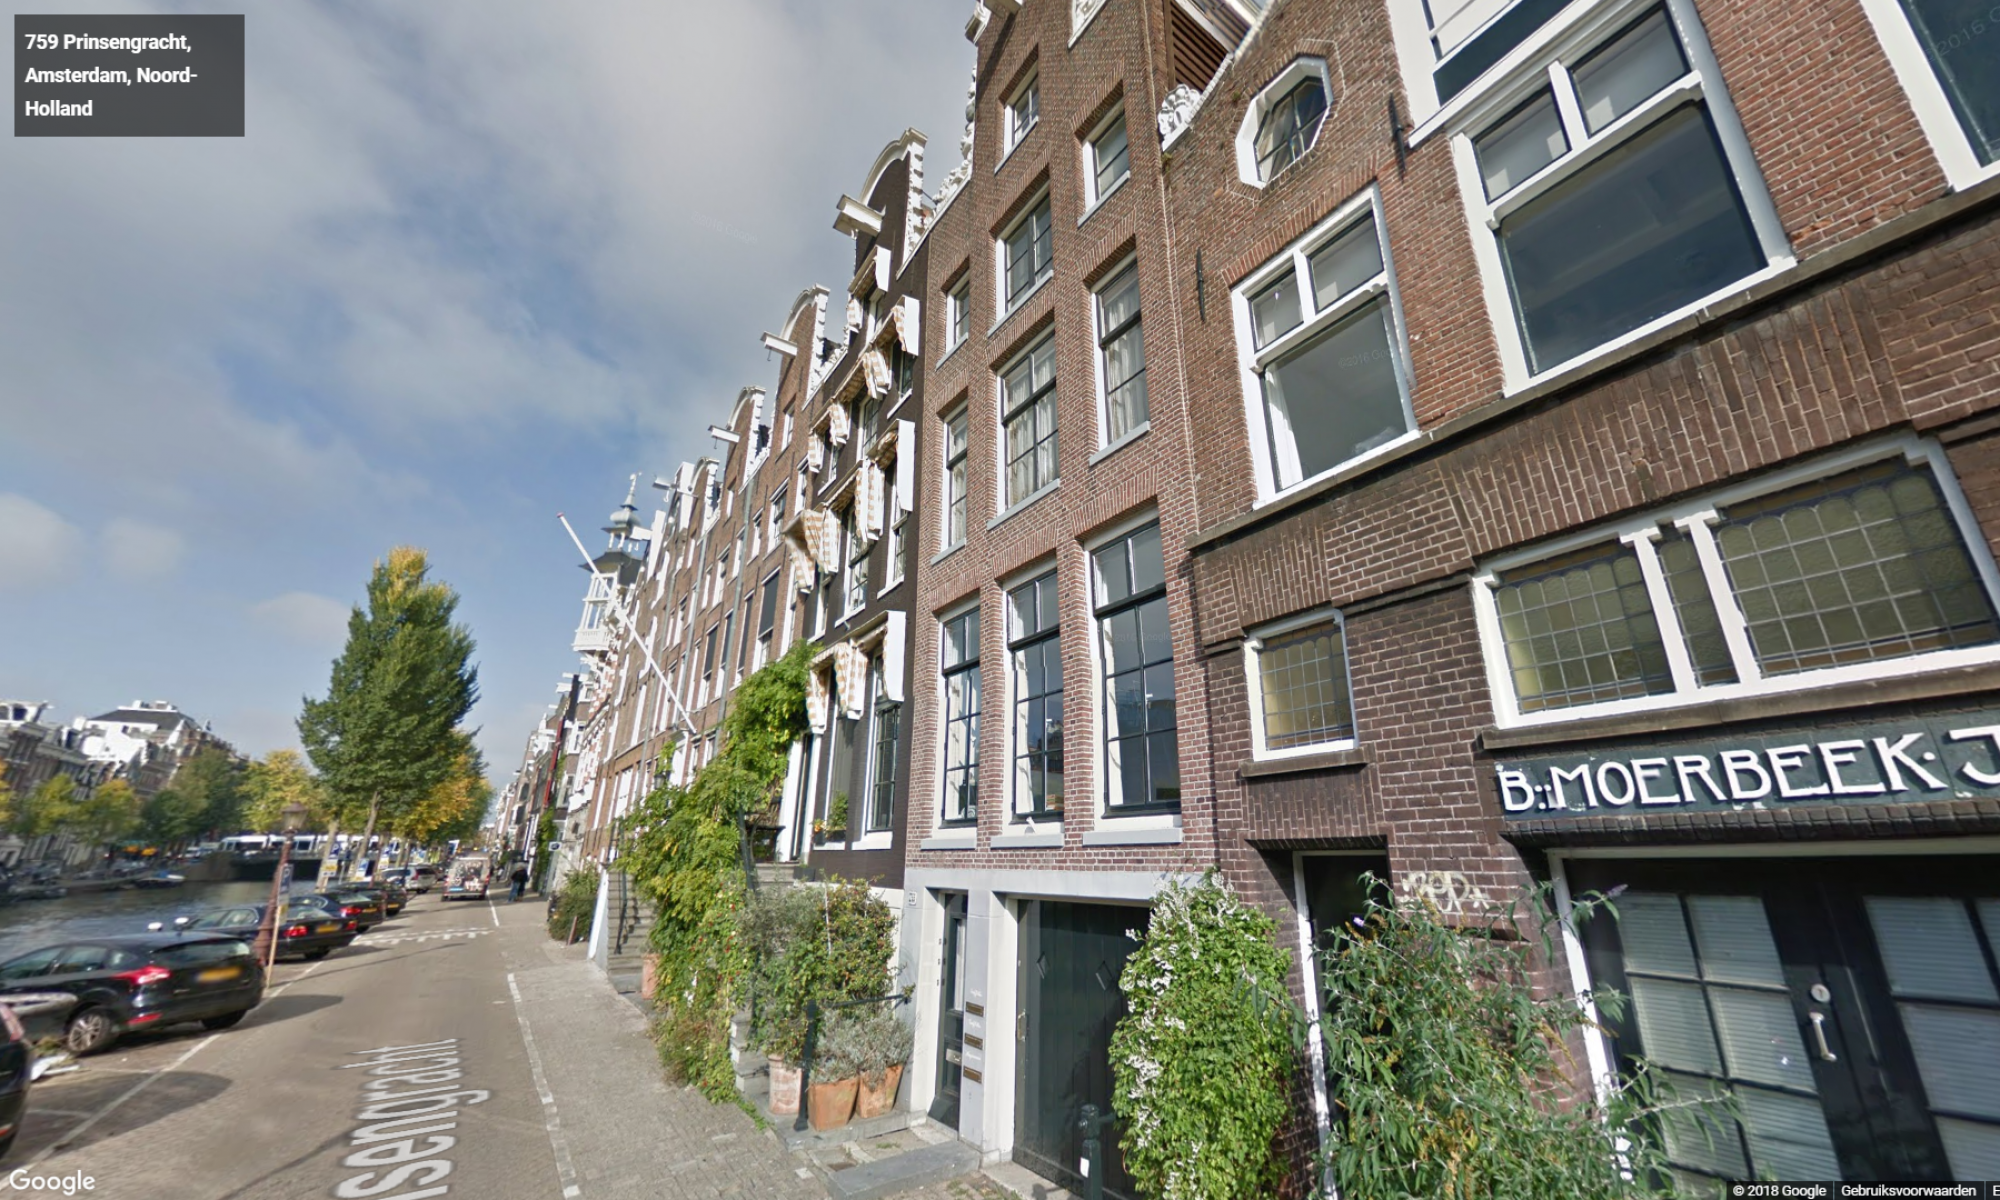 Centrum voor Counseling